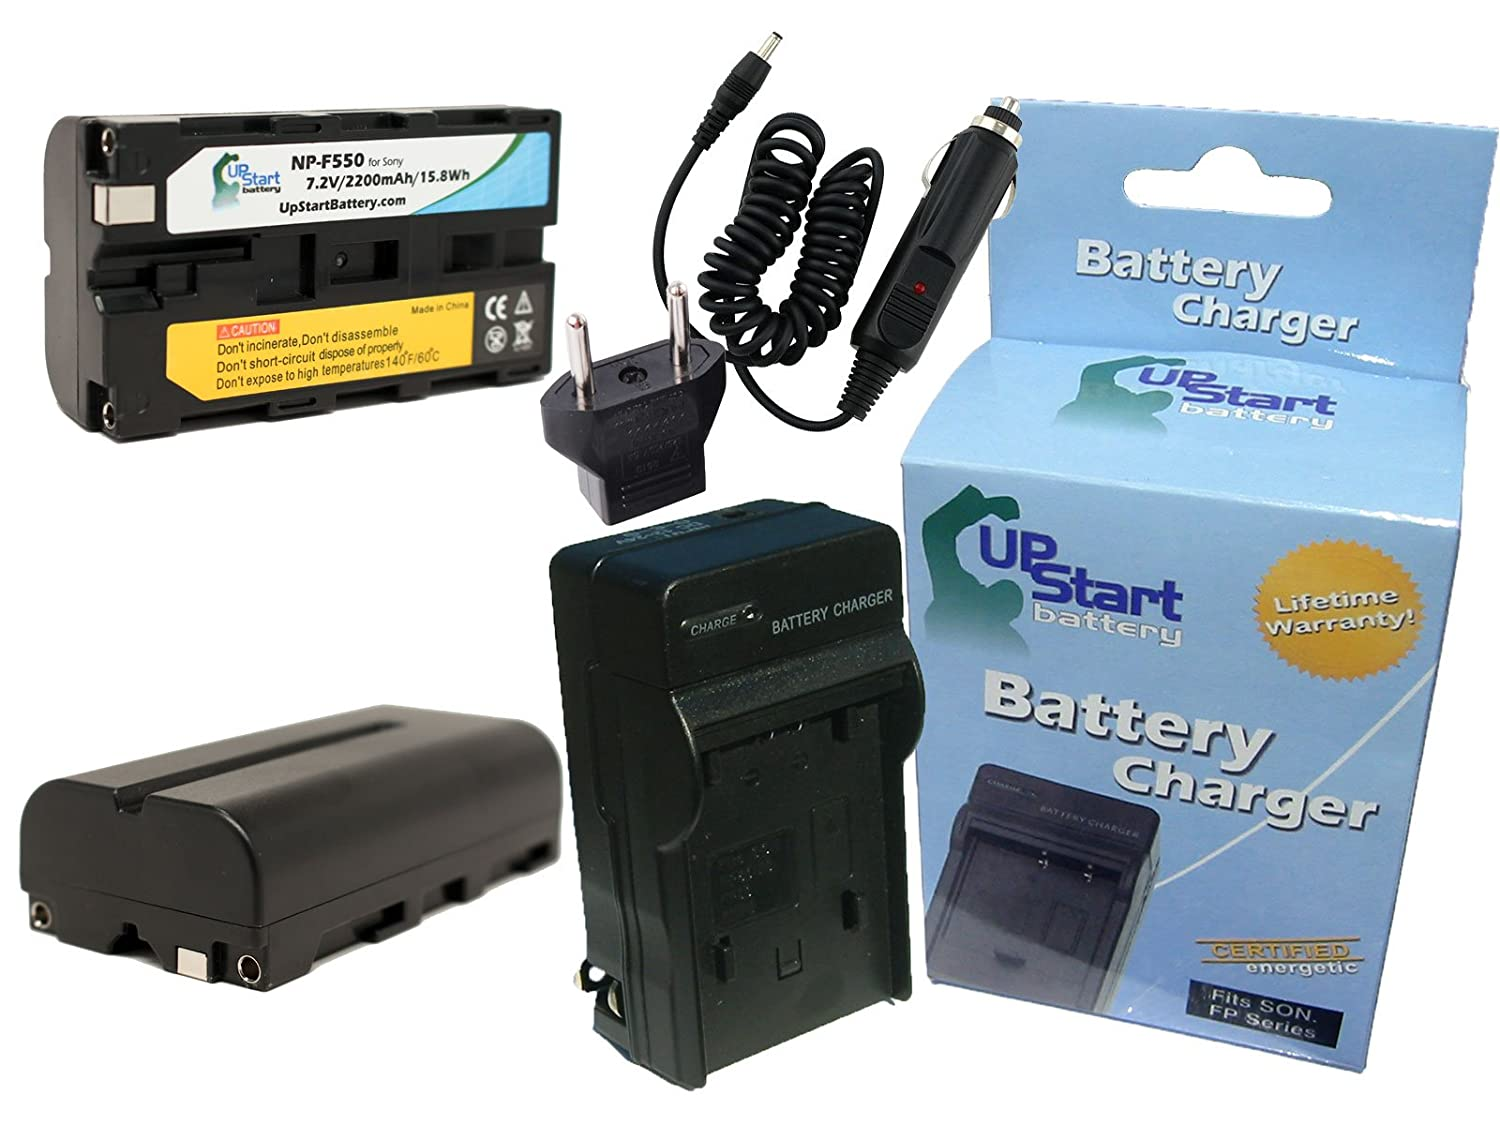 2x Pack - Sony DSR-PD170P Battery + Charger with Car & EU Adapters - Replacement for Sony NP-F550 Digital Camera Battery and Charger (2200mAh, 7.2V, Lithium-Ion) Upstart Battery NP-550-2BATT1CH-CAR-EU-DL237